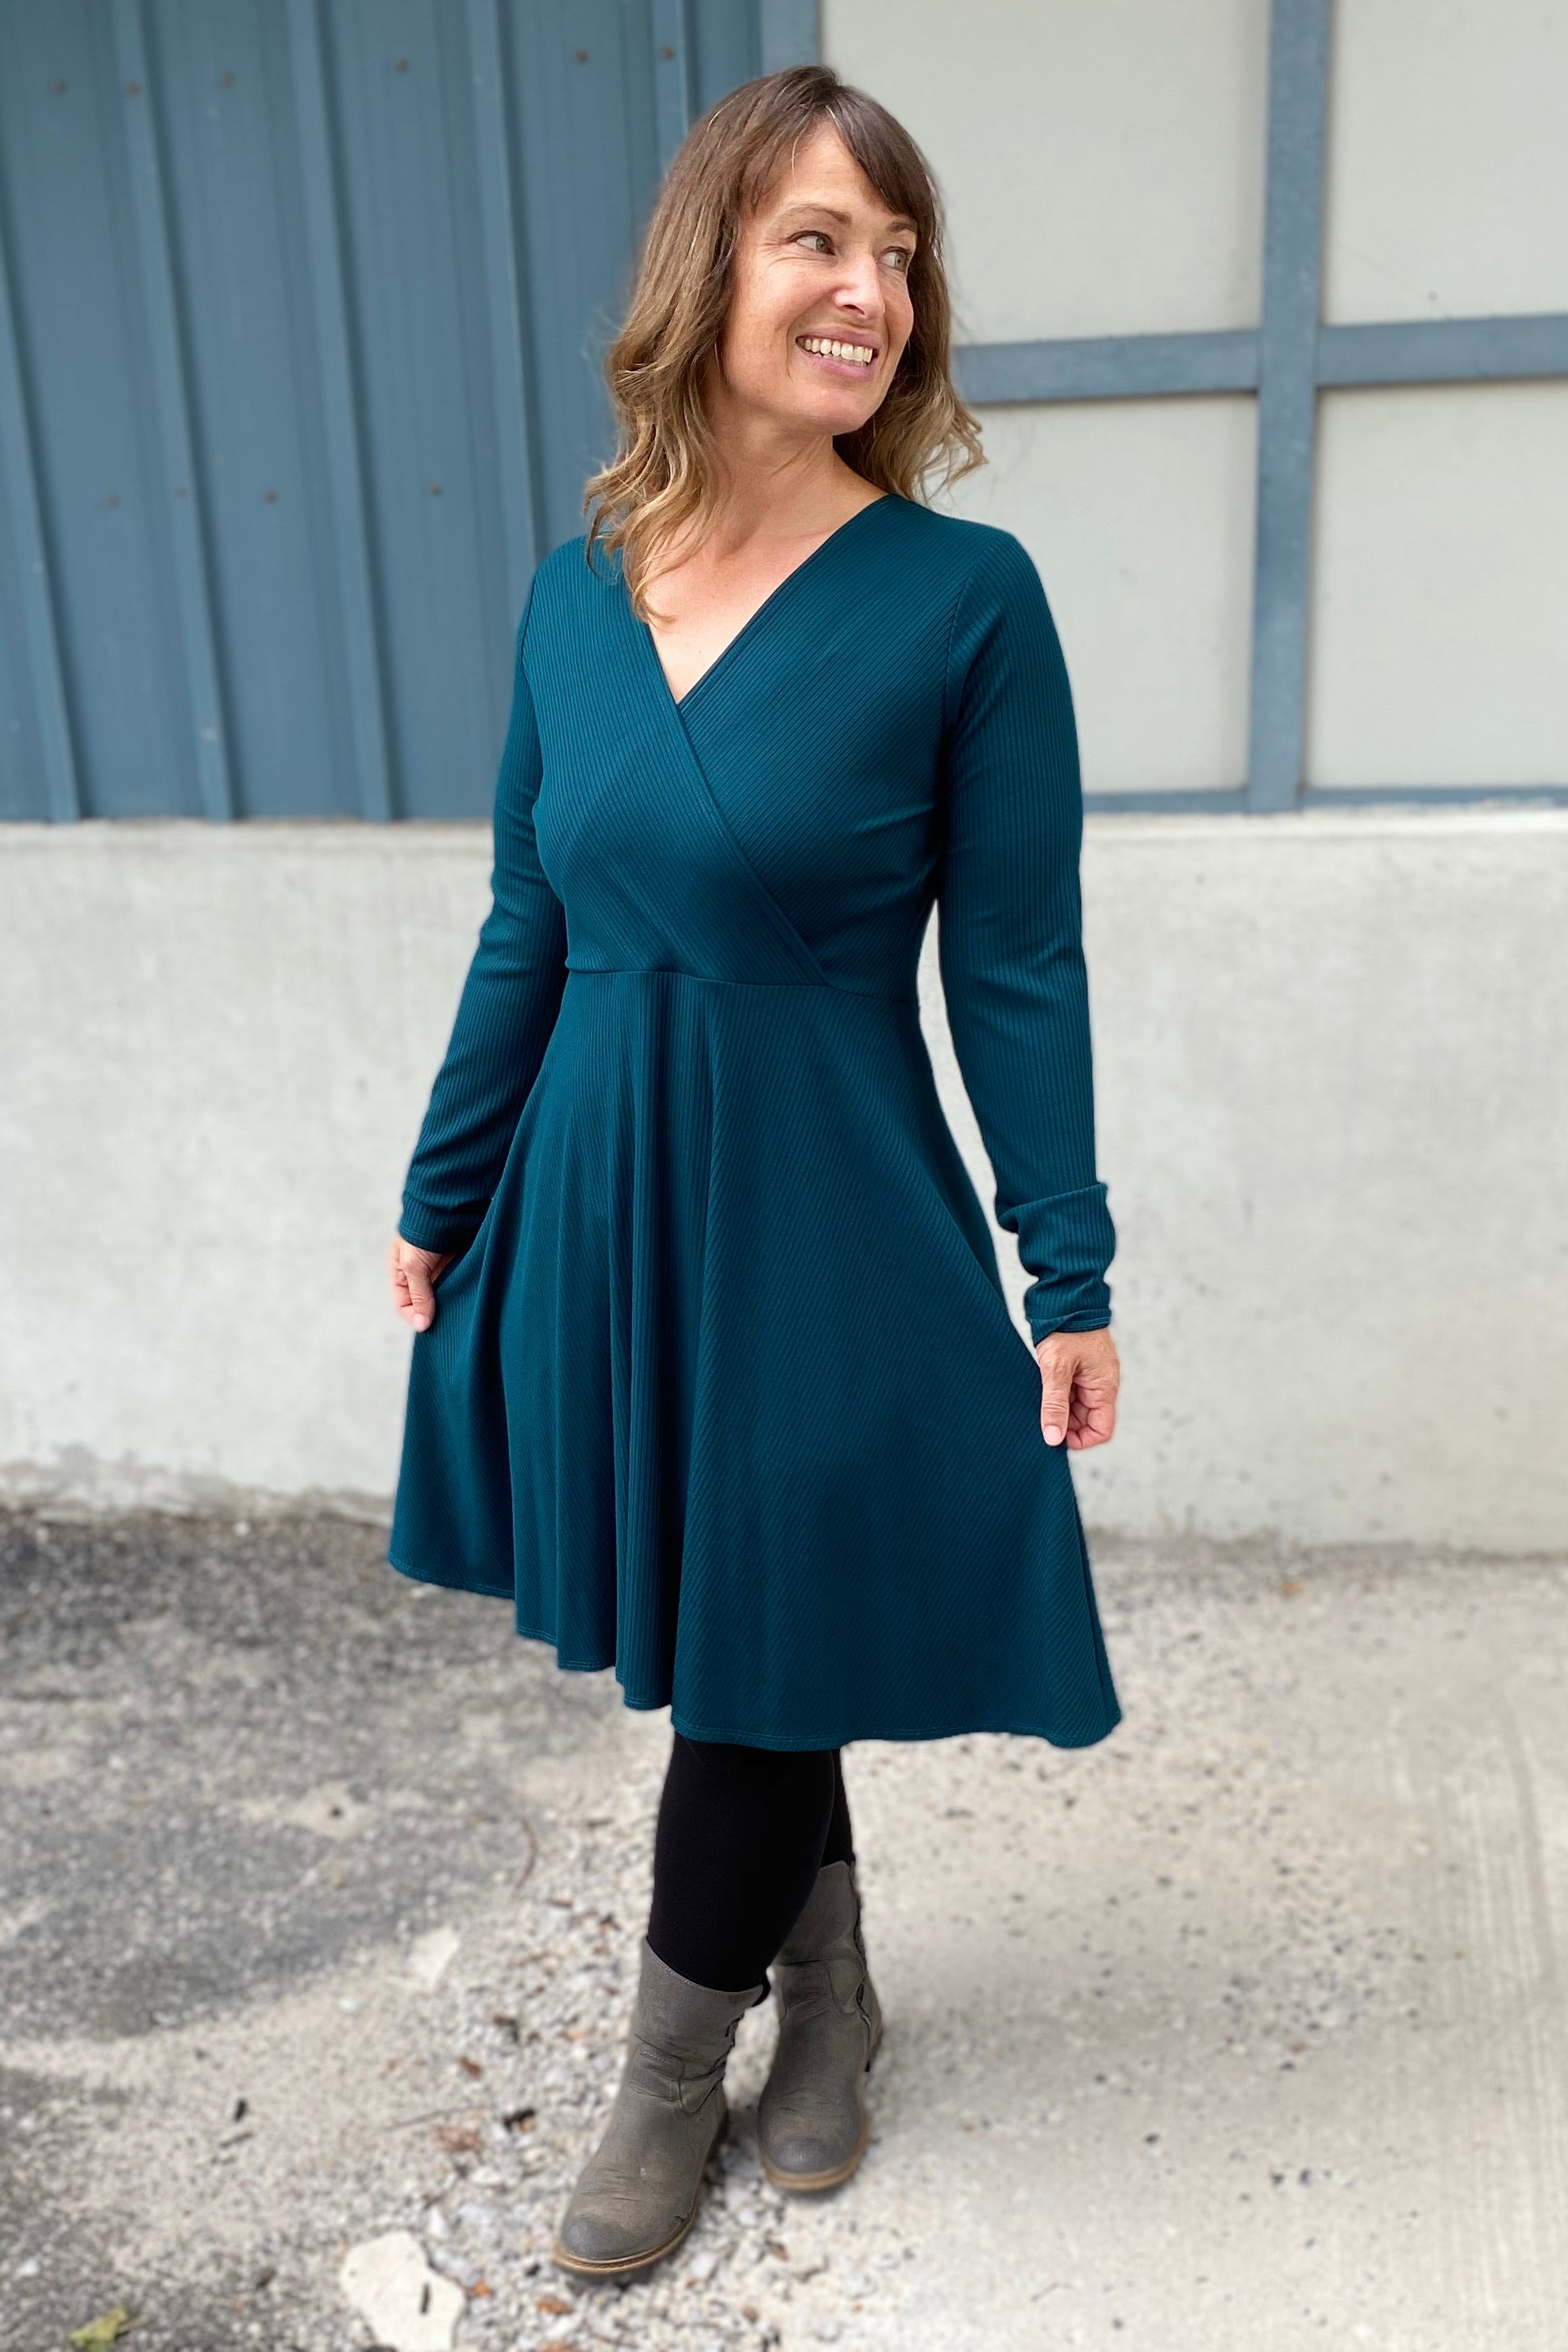 Vera dress by Cherry Bobin in Turquoise; bamboo ribbed knit wrap dress; long sleeved, mid-length; styled with black leggings and grey boots